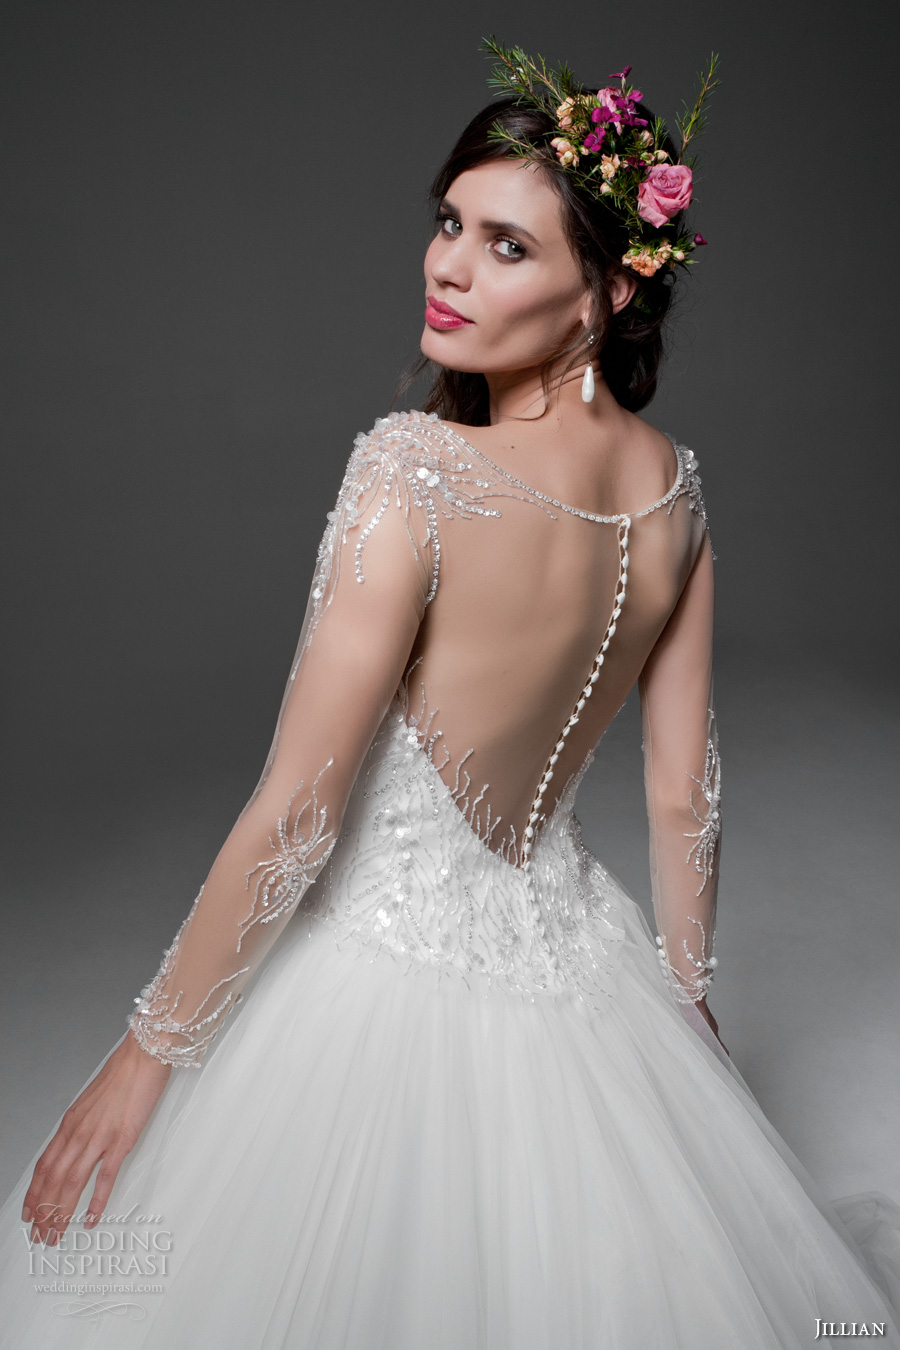 jillian 2017 bridal sheer long sleeves illusion bateau sweetheart neckline heavily embellished bodice tulle skirt princess ball gown wedding dress sheer back royal train (maura) zbv